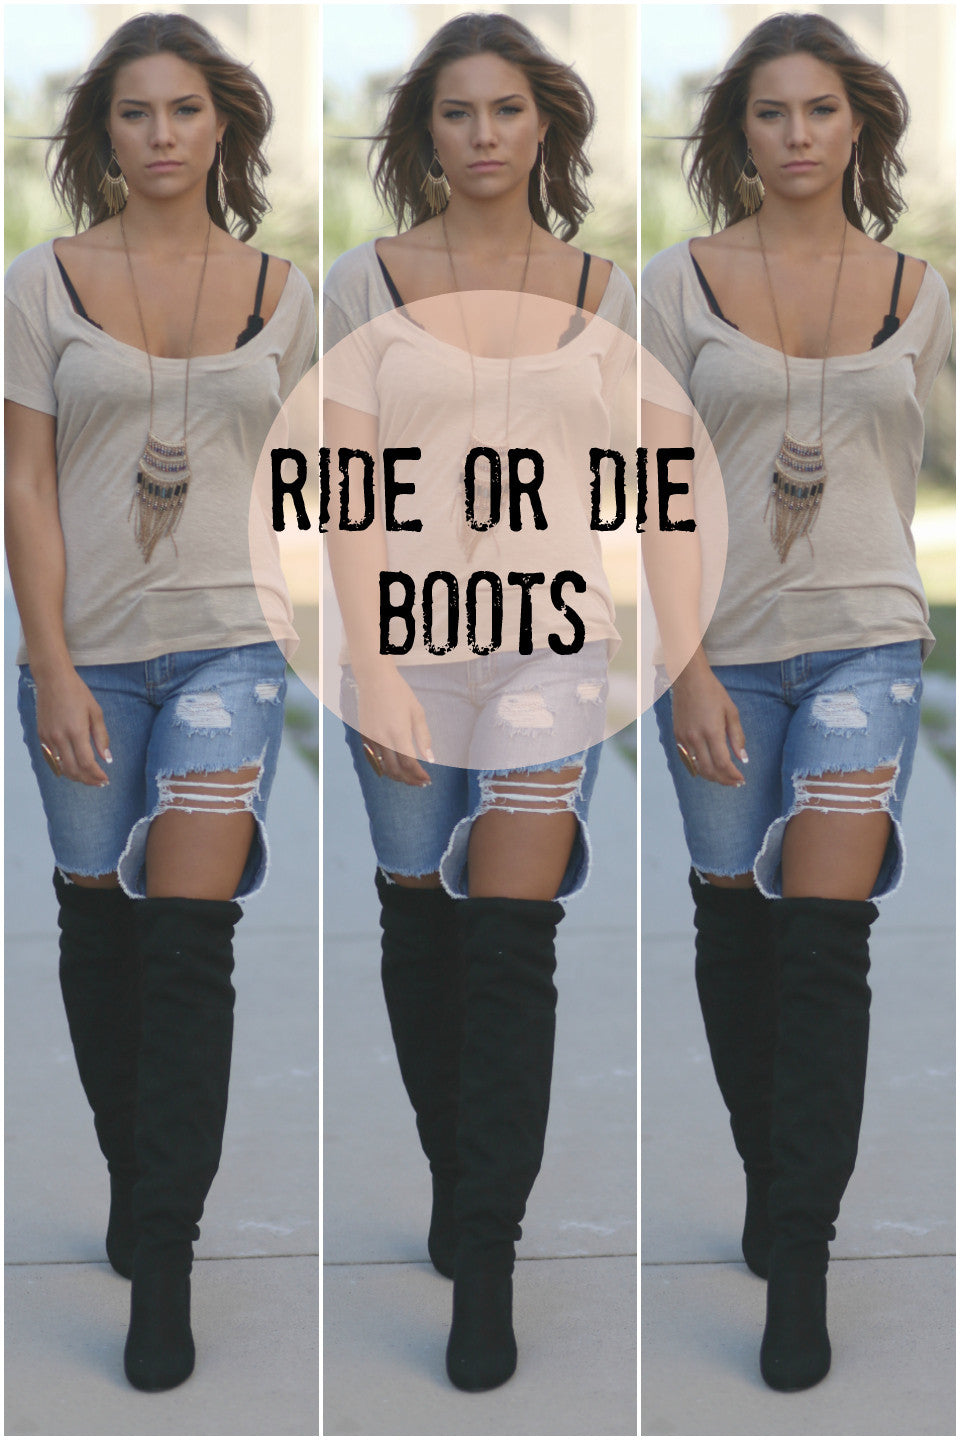 Ride Or Die Boots